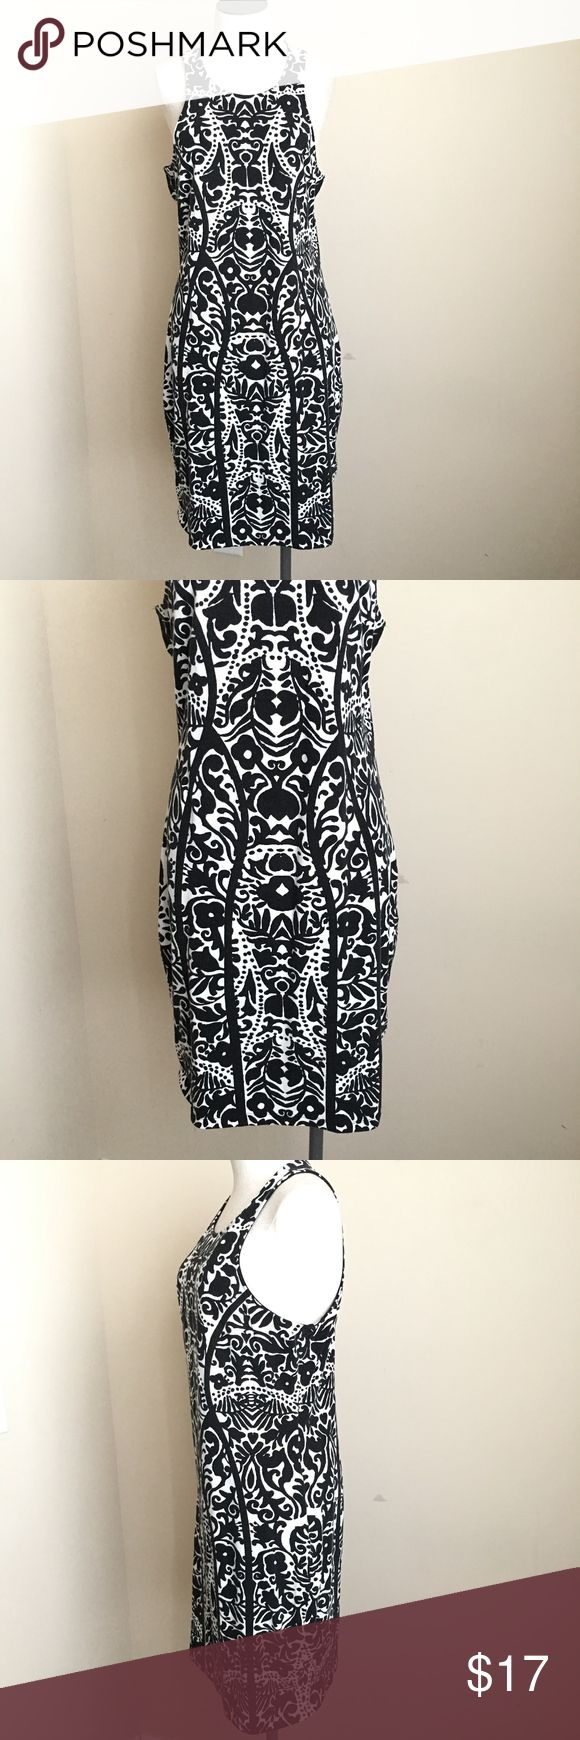 """H&M Stretch Bodycon Printed Zip Up Racerback Dress H&M Stretch Bodycon Printed Zip Up Racerback Dress  Black and white print  Womens size Large  95% Cotton and 5% Elastane  The black pattern has some wash wear to the color  Measurements taken while laying flat:  19"""" armpit to armpit 17"""" length  36"""" waist  Pair this dress with a bold colored chunky statement neck H&M Dresses"""